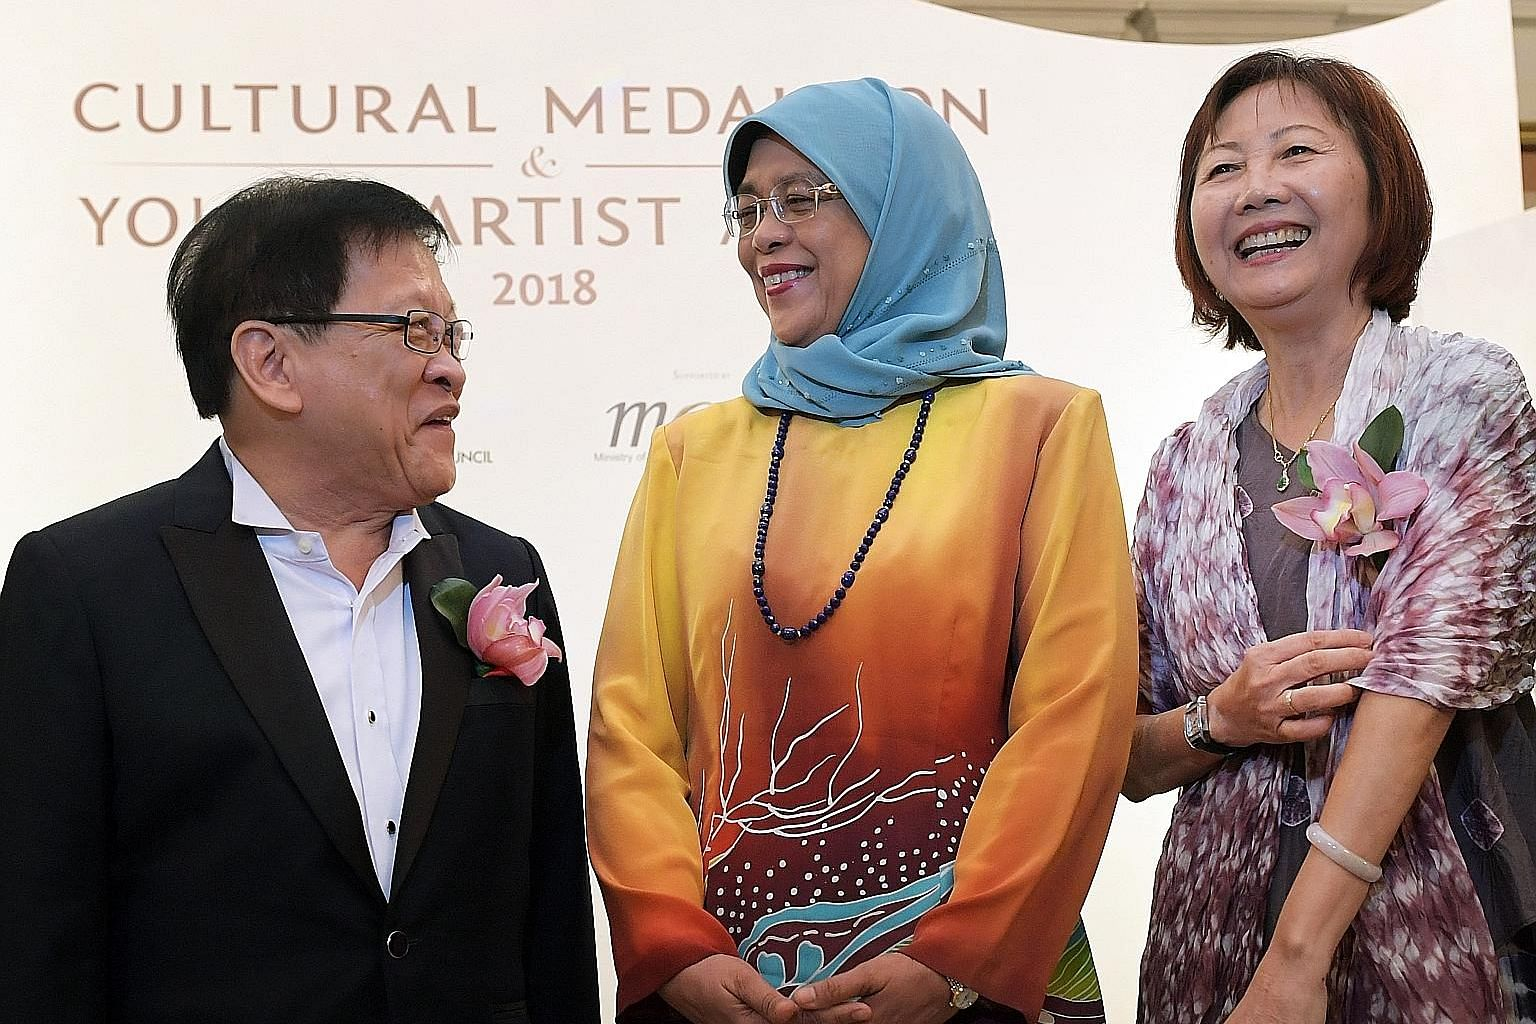 Cultural Medallion recipients Louis Soliano, a jazz musician, and Low Mei Yoke, a dance choreographer, with President Halimah Yacob at the Istana yesterday. The Young Artist Award was also given out at yesterday's ceremony.